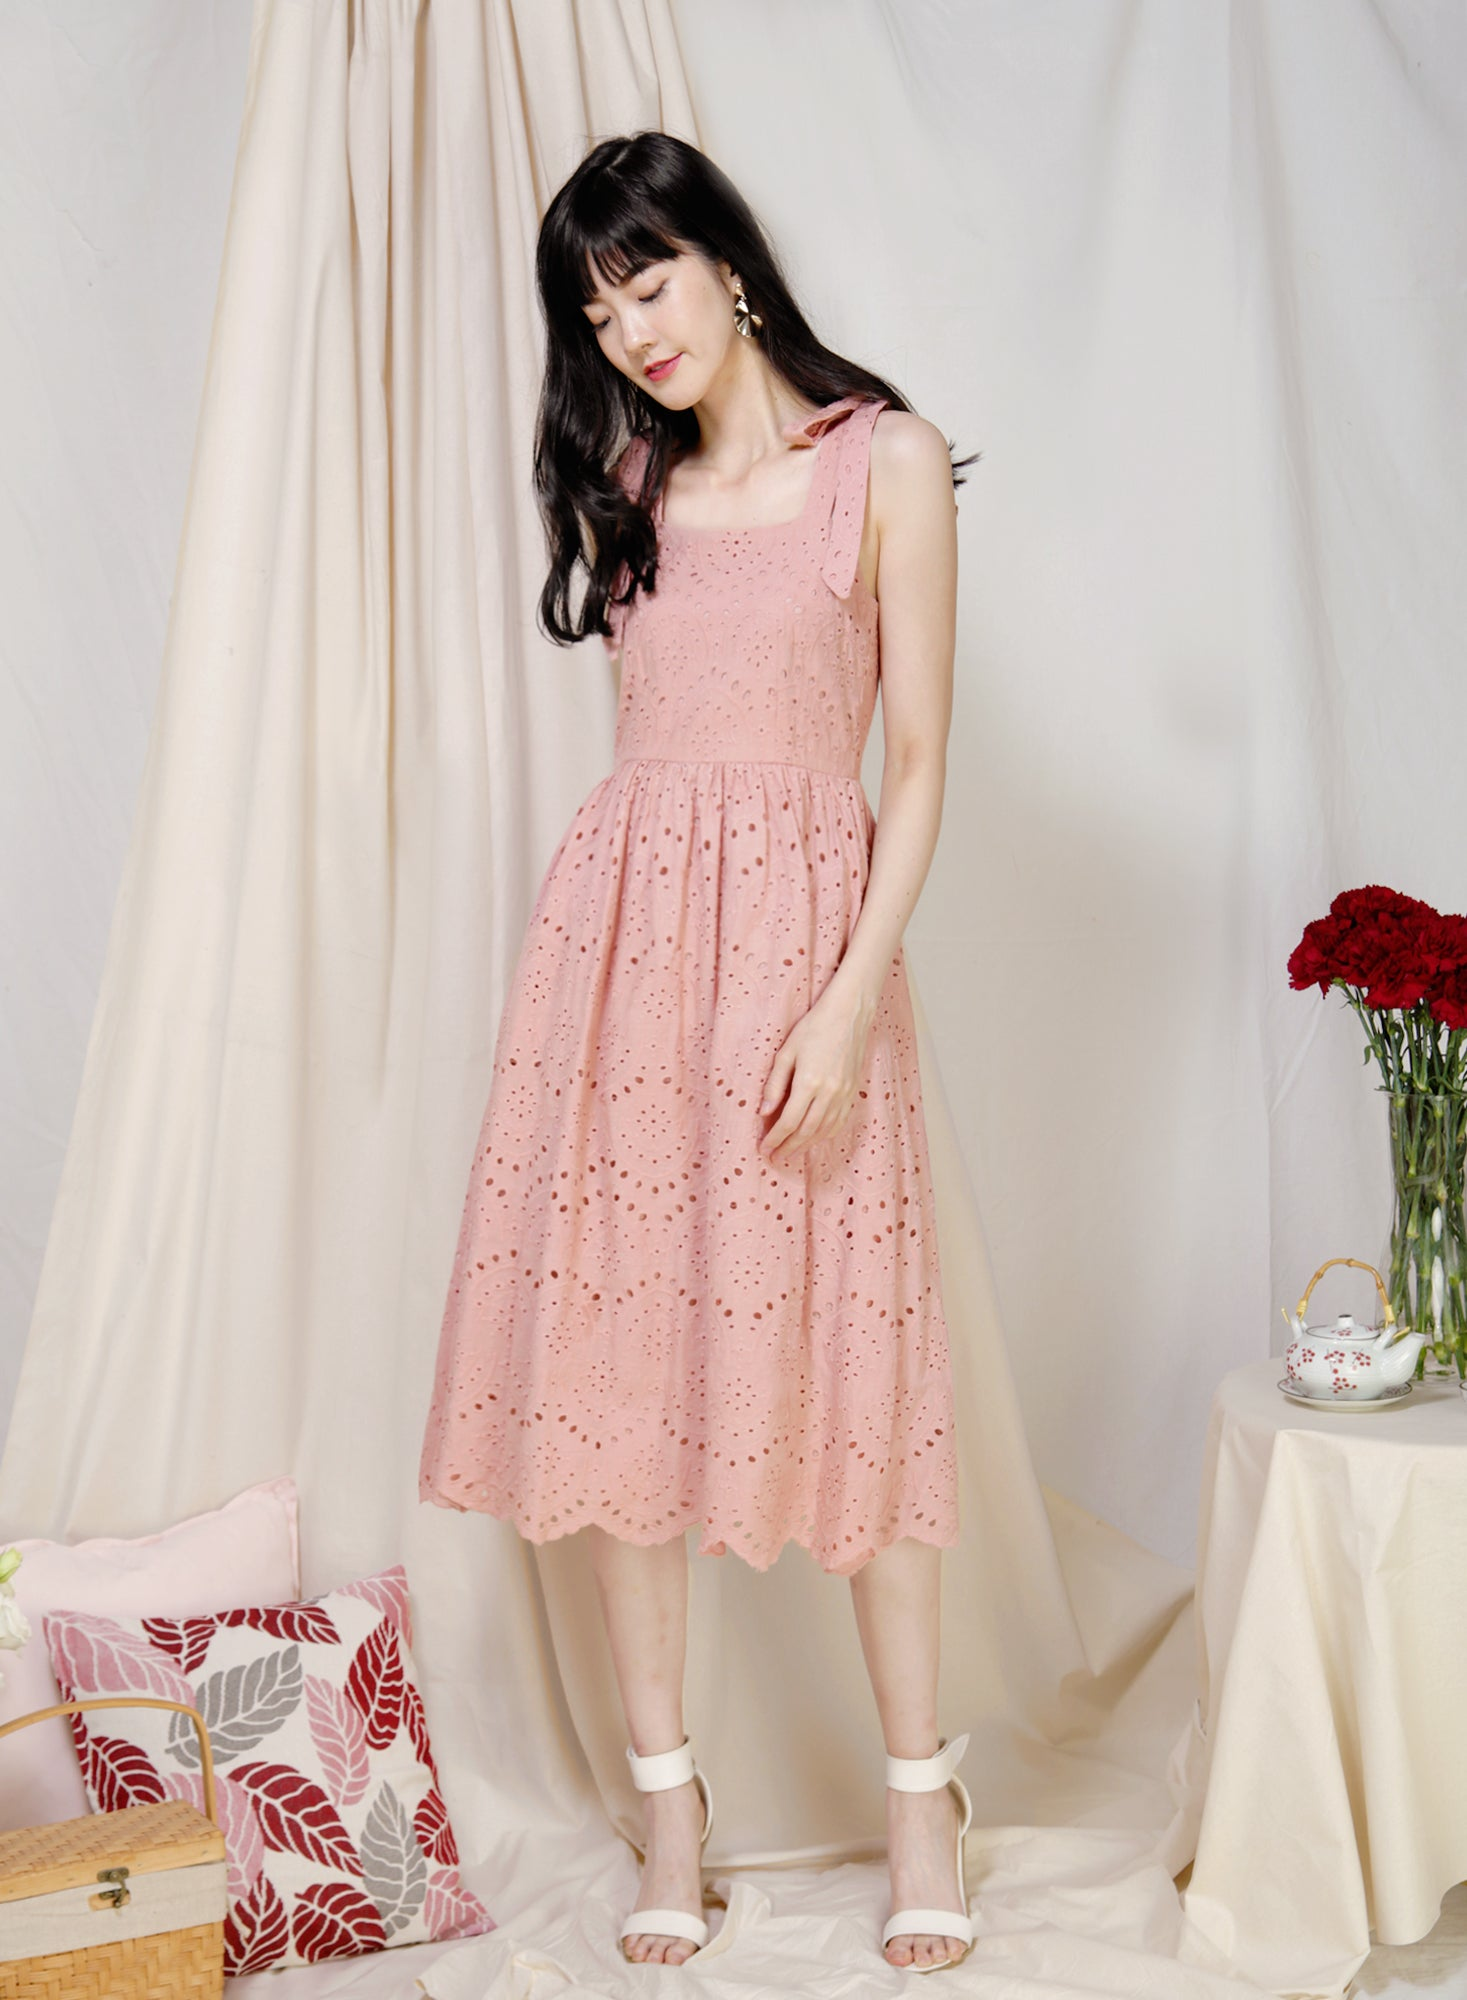 Aboard Tie Straps Eyelet Dress (Blush) at $ 46.50 only sold at And Well Dressed Online Fashion Store Singapore